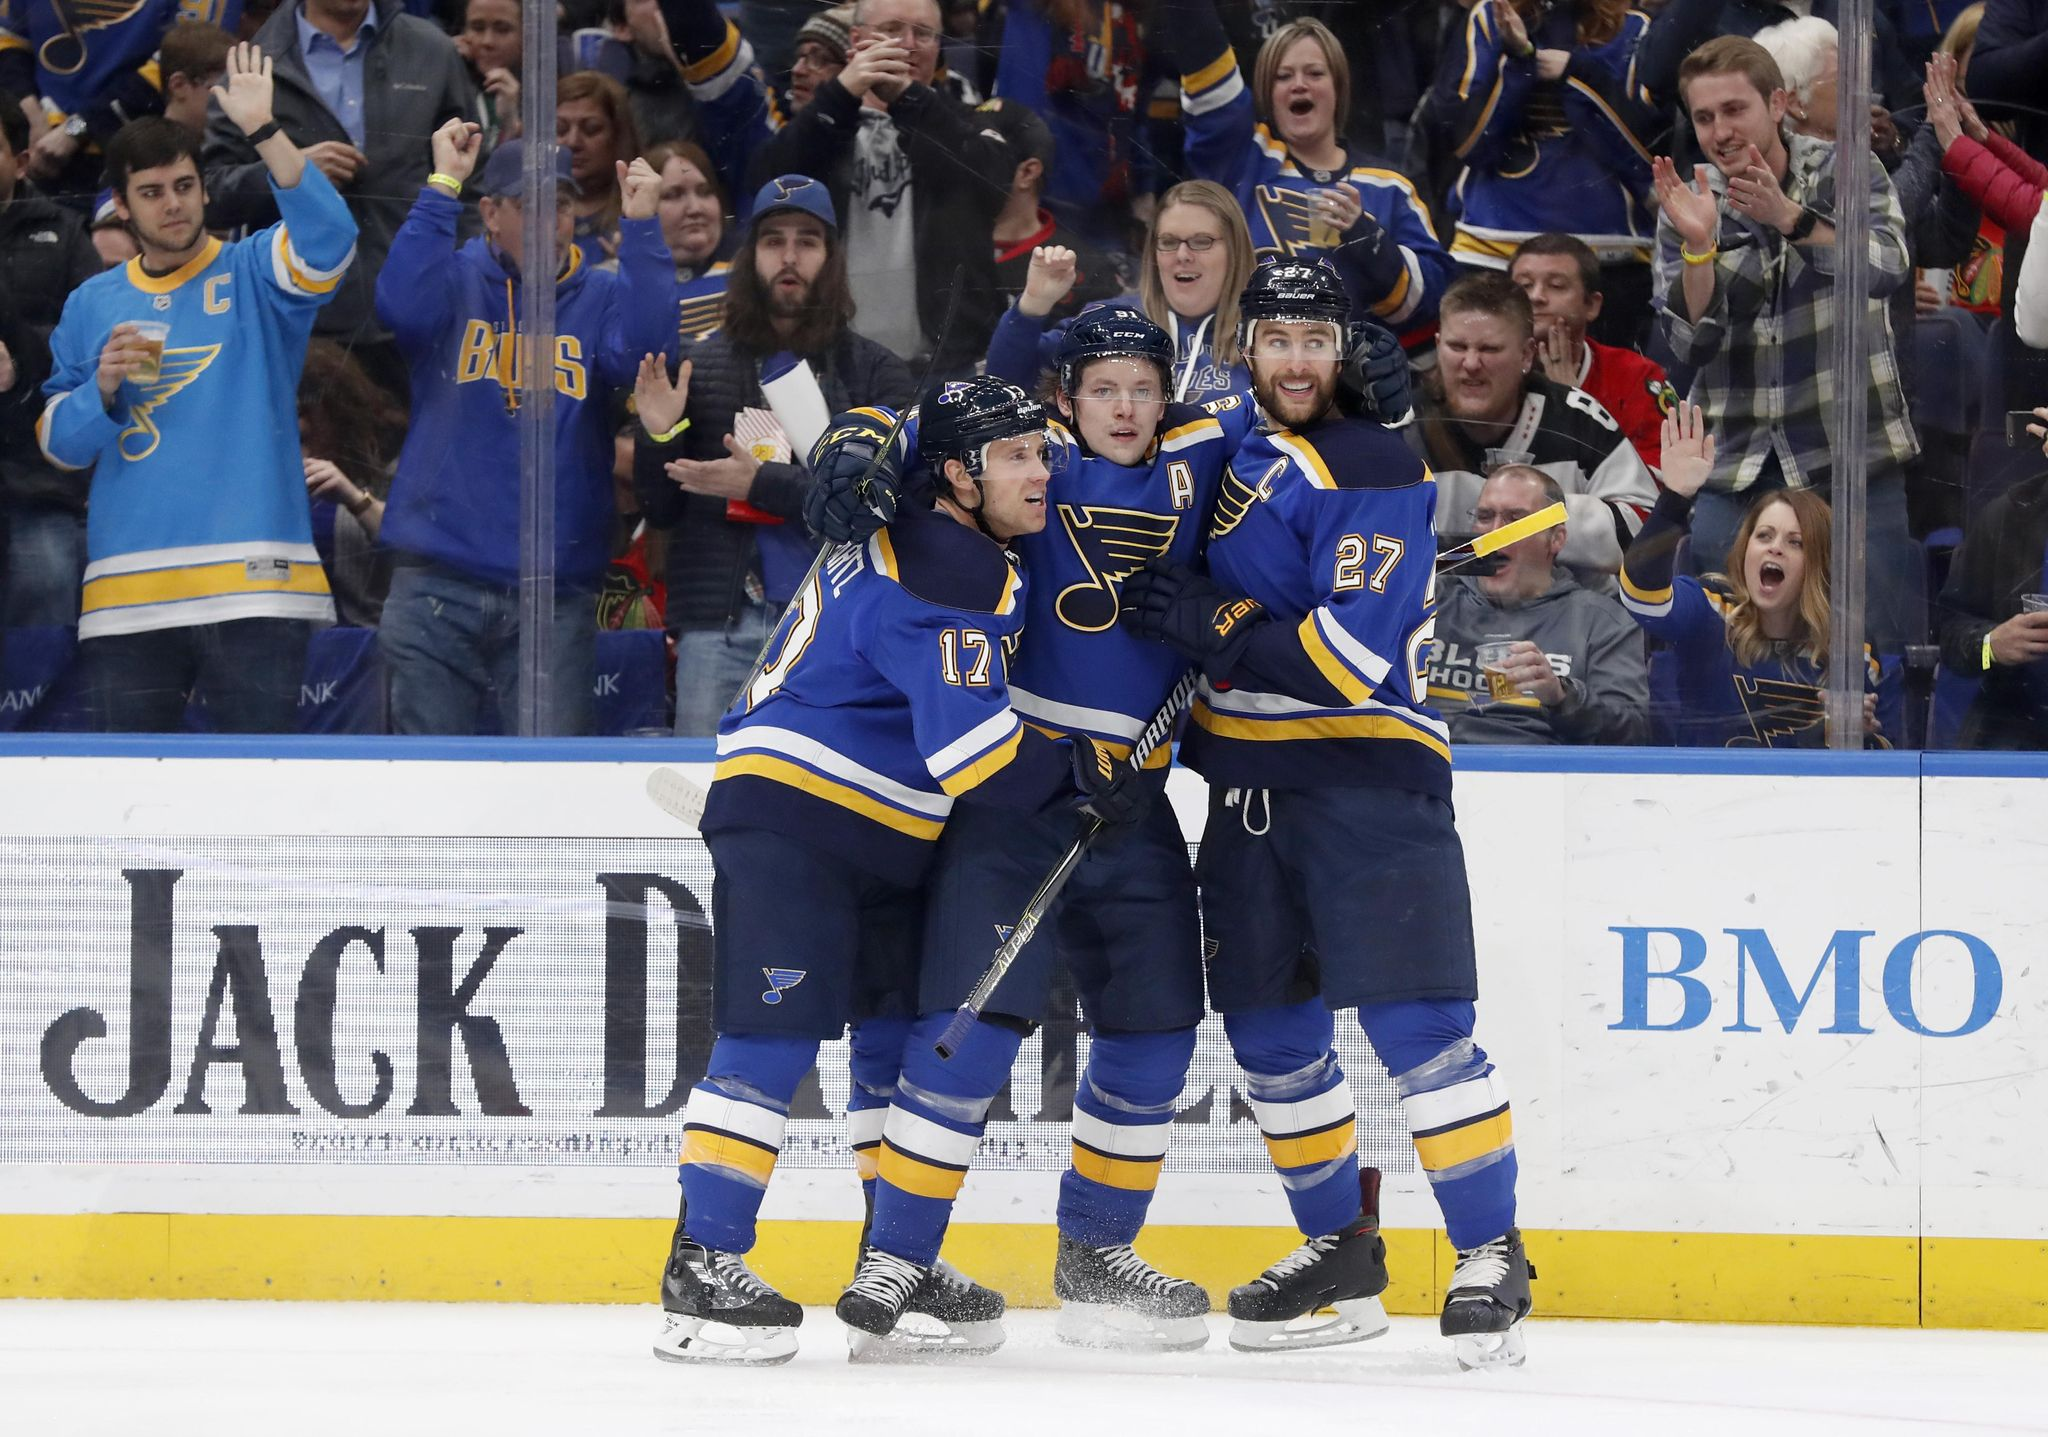 Blues_preview_hockey_14725_s2048x1437